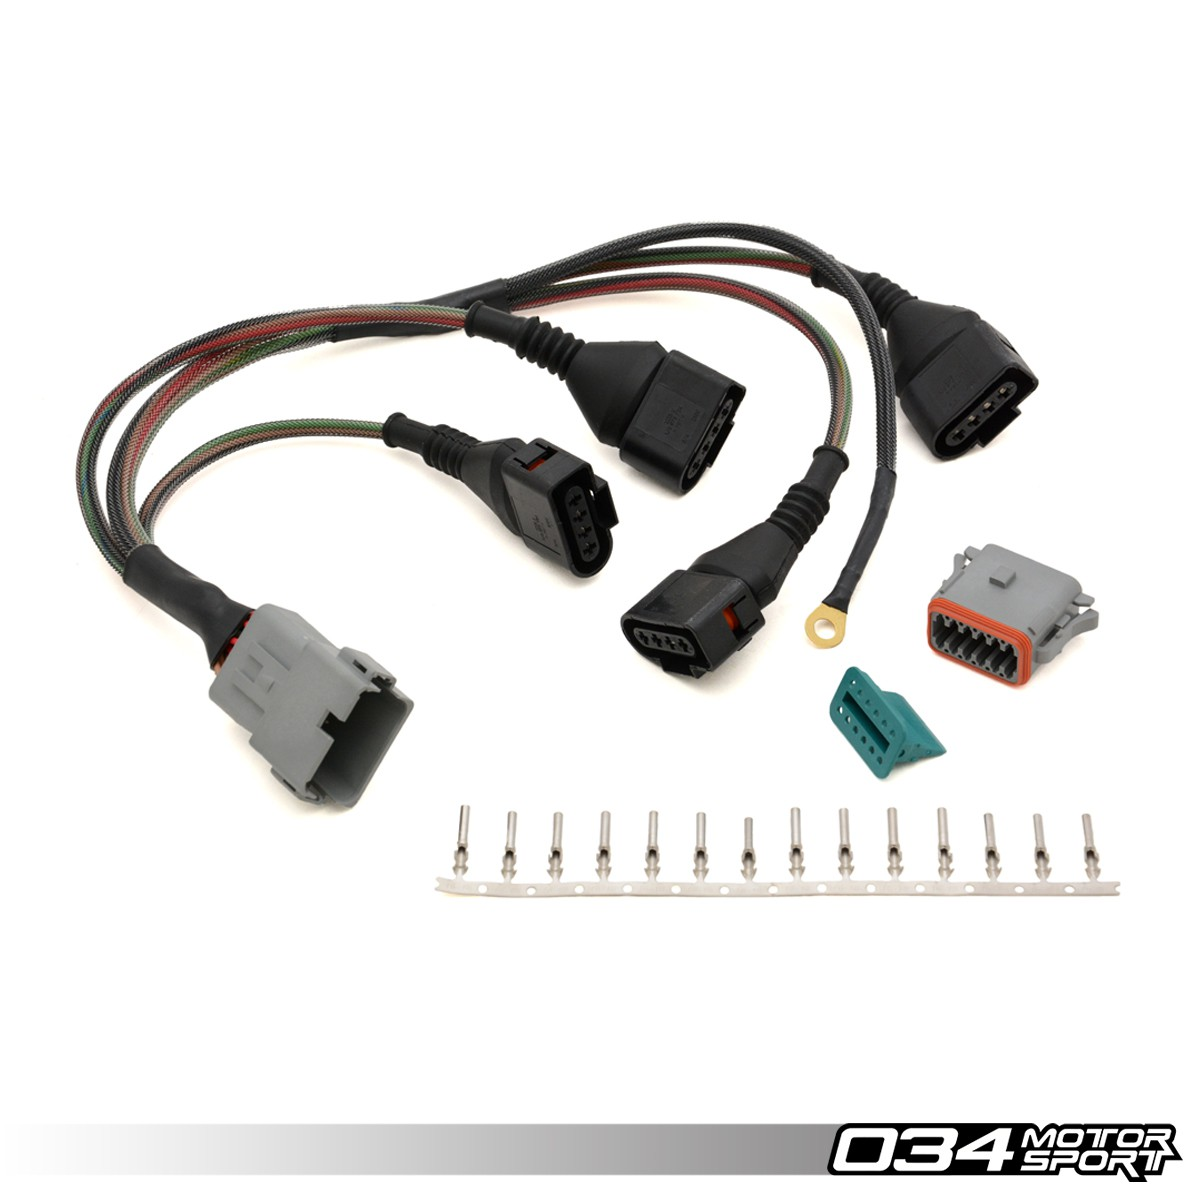 repair update harness audi volkswagen 18t with 4 wire coils 034motorsport 034 701 0004 2 repair update harness, audi volkswagen 1 8t with 4 wire coils how to repair wire harness connector at gsmportal.co